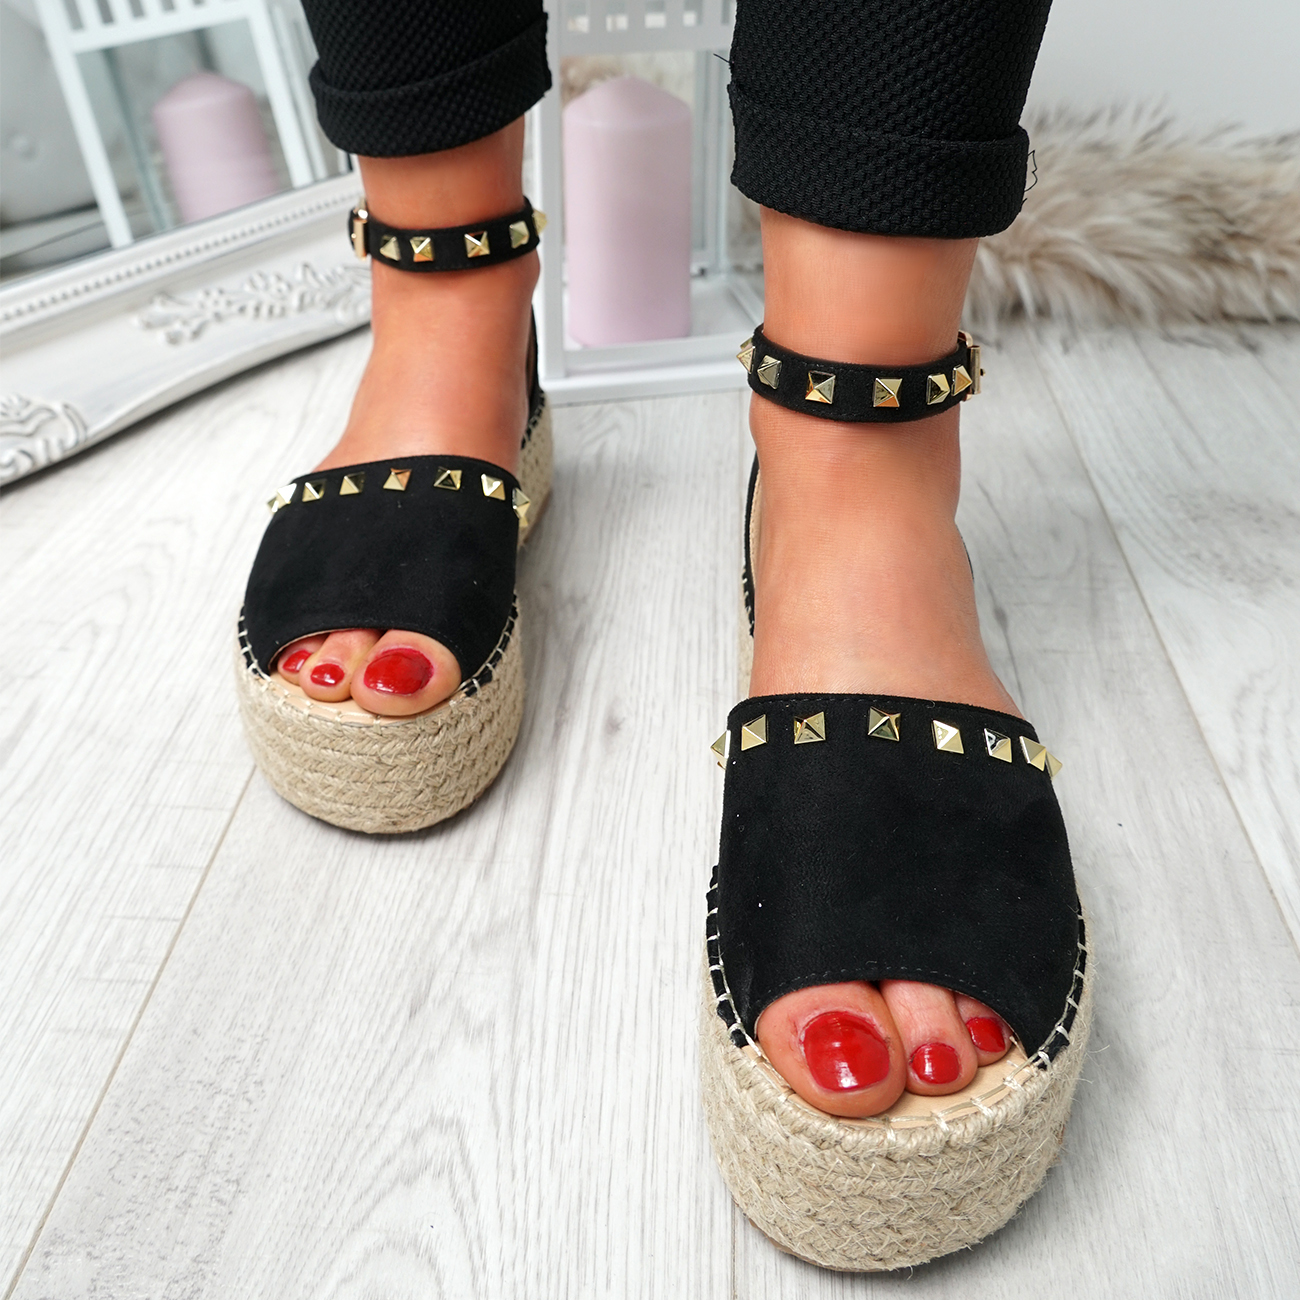 WOMENS-LADIES-ROCK-STUDS-ESPADRILLE-FLATFORM-PLATFORM-SANDALS-CASUAL-SHOES-SIZE thumbnail 15